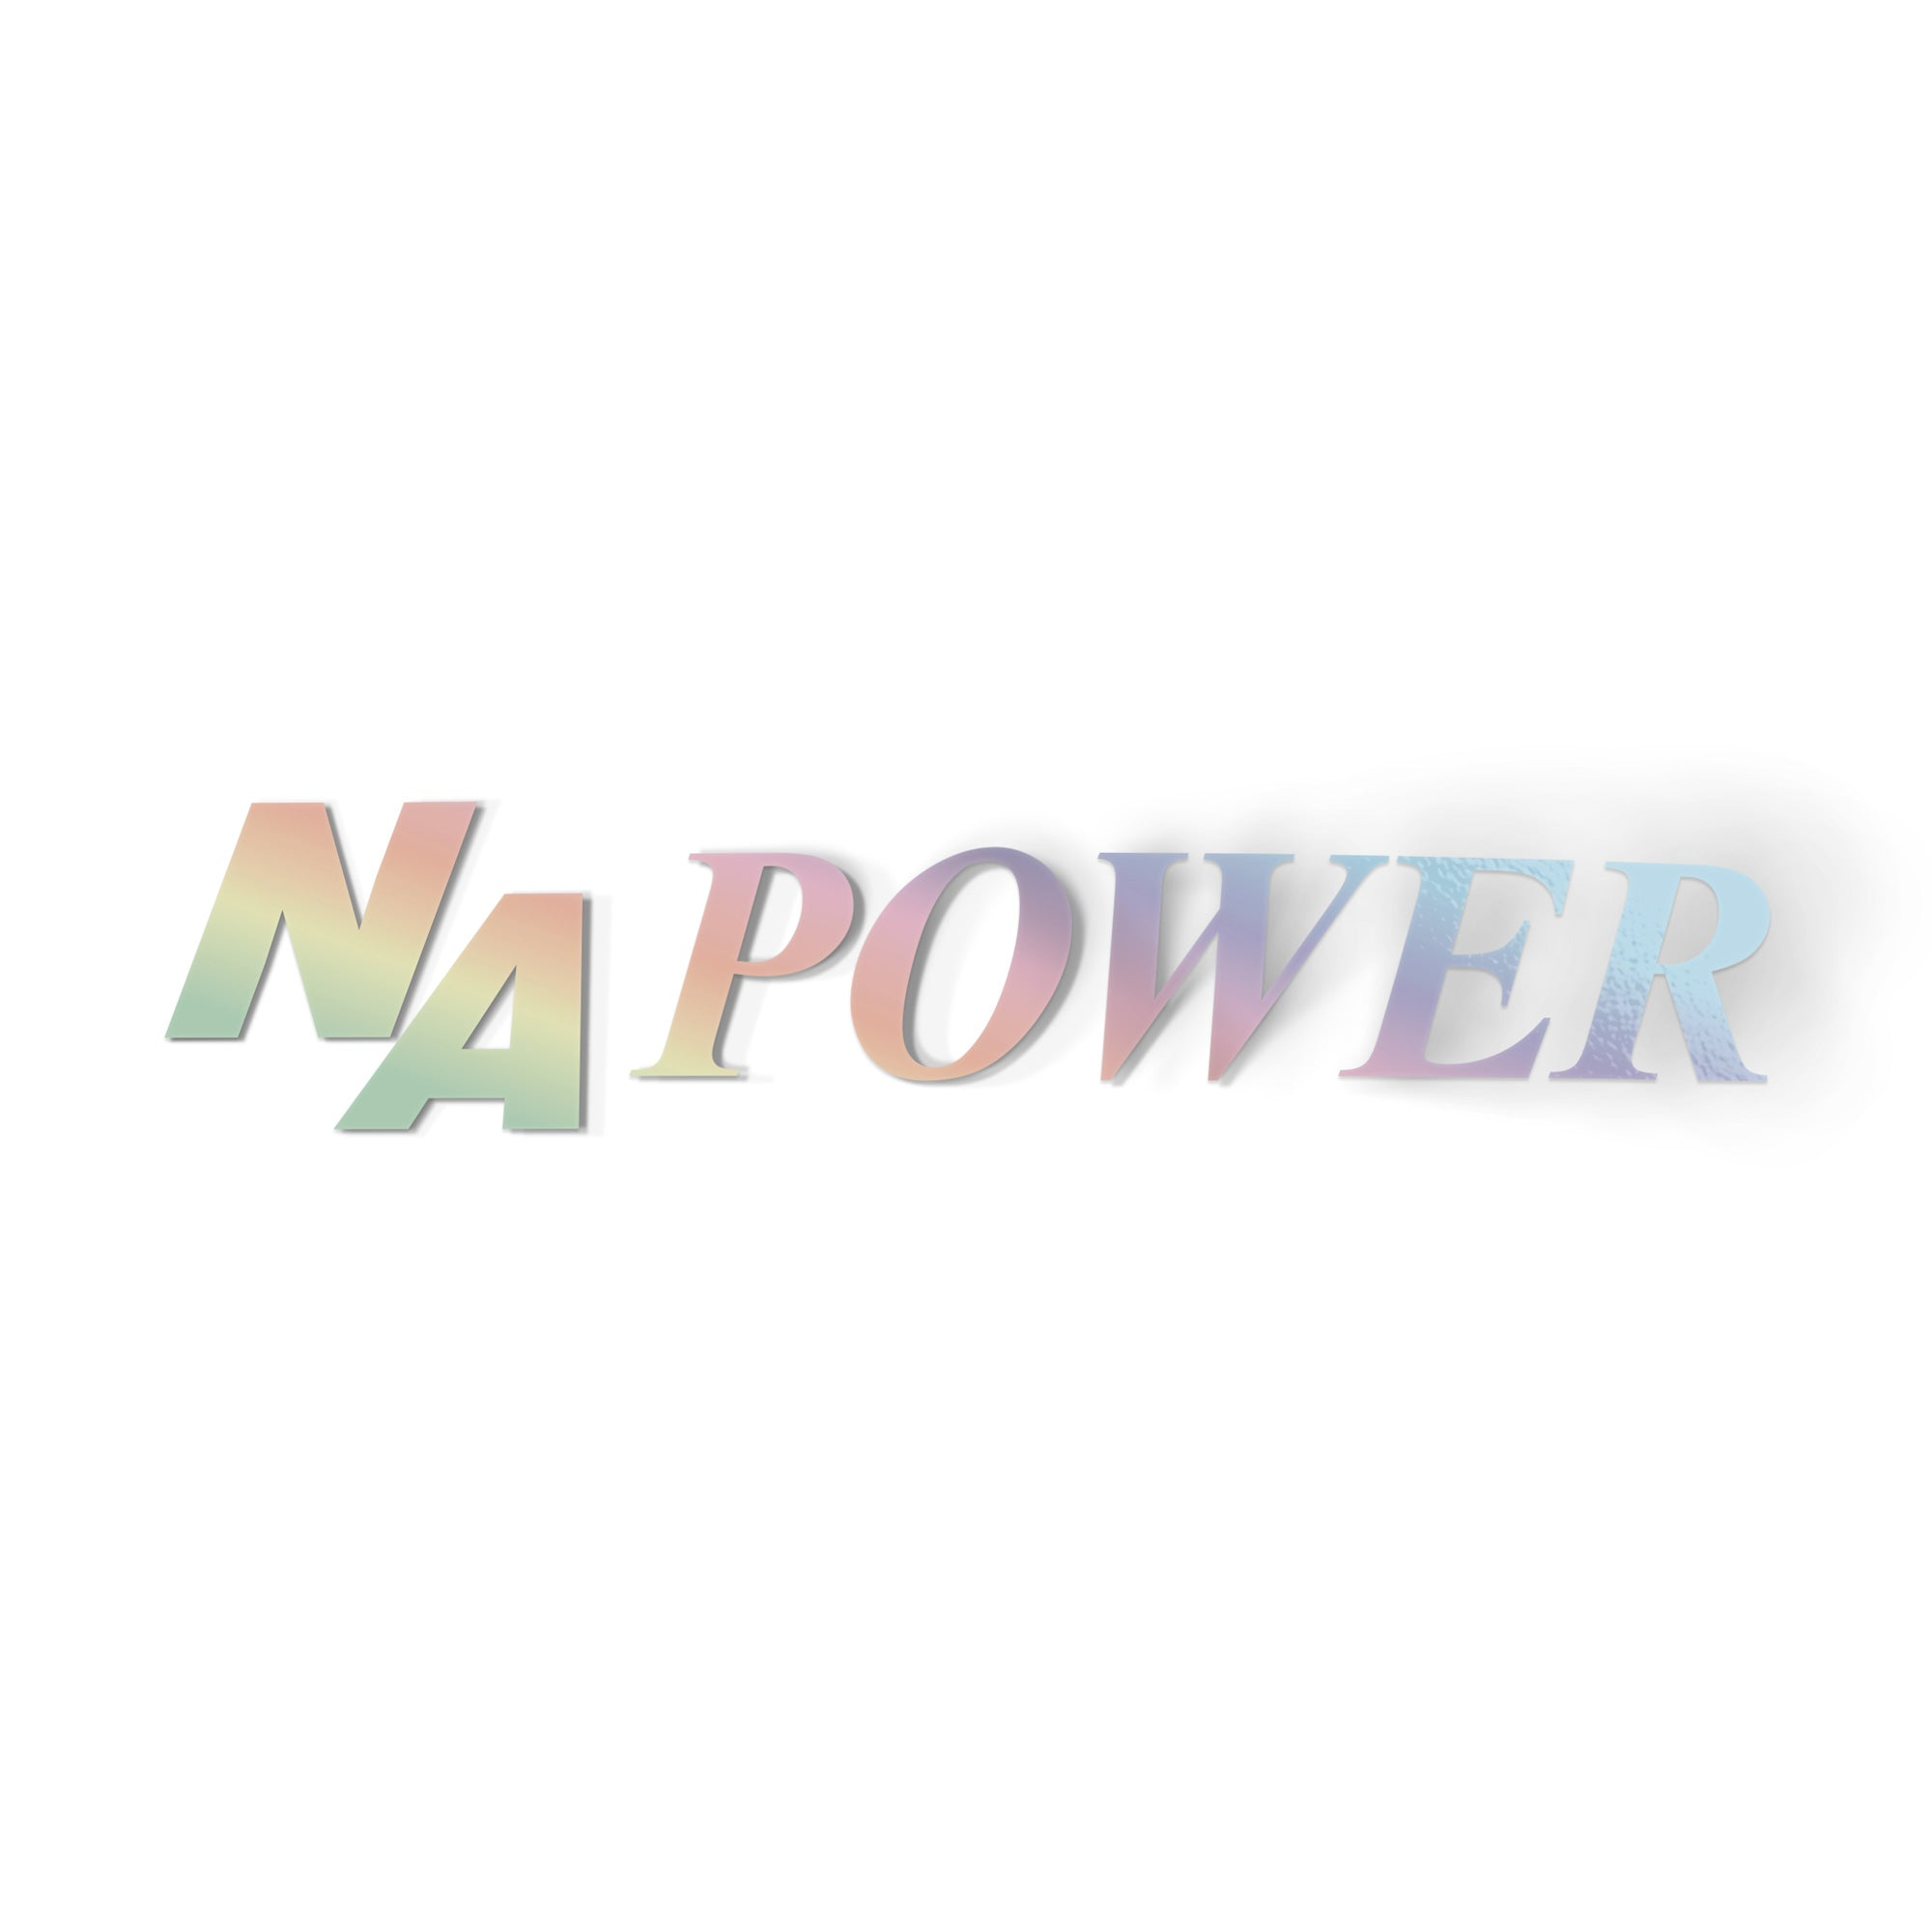 NA Power - VINYL HOUZE